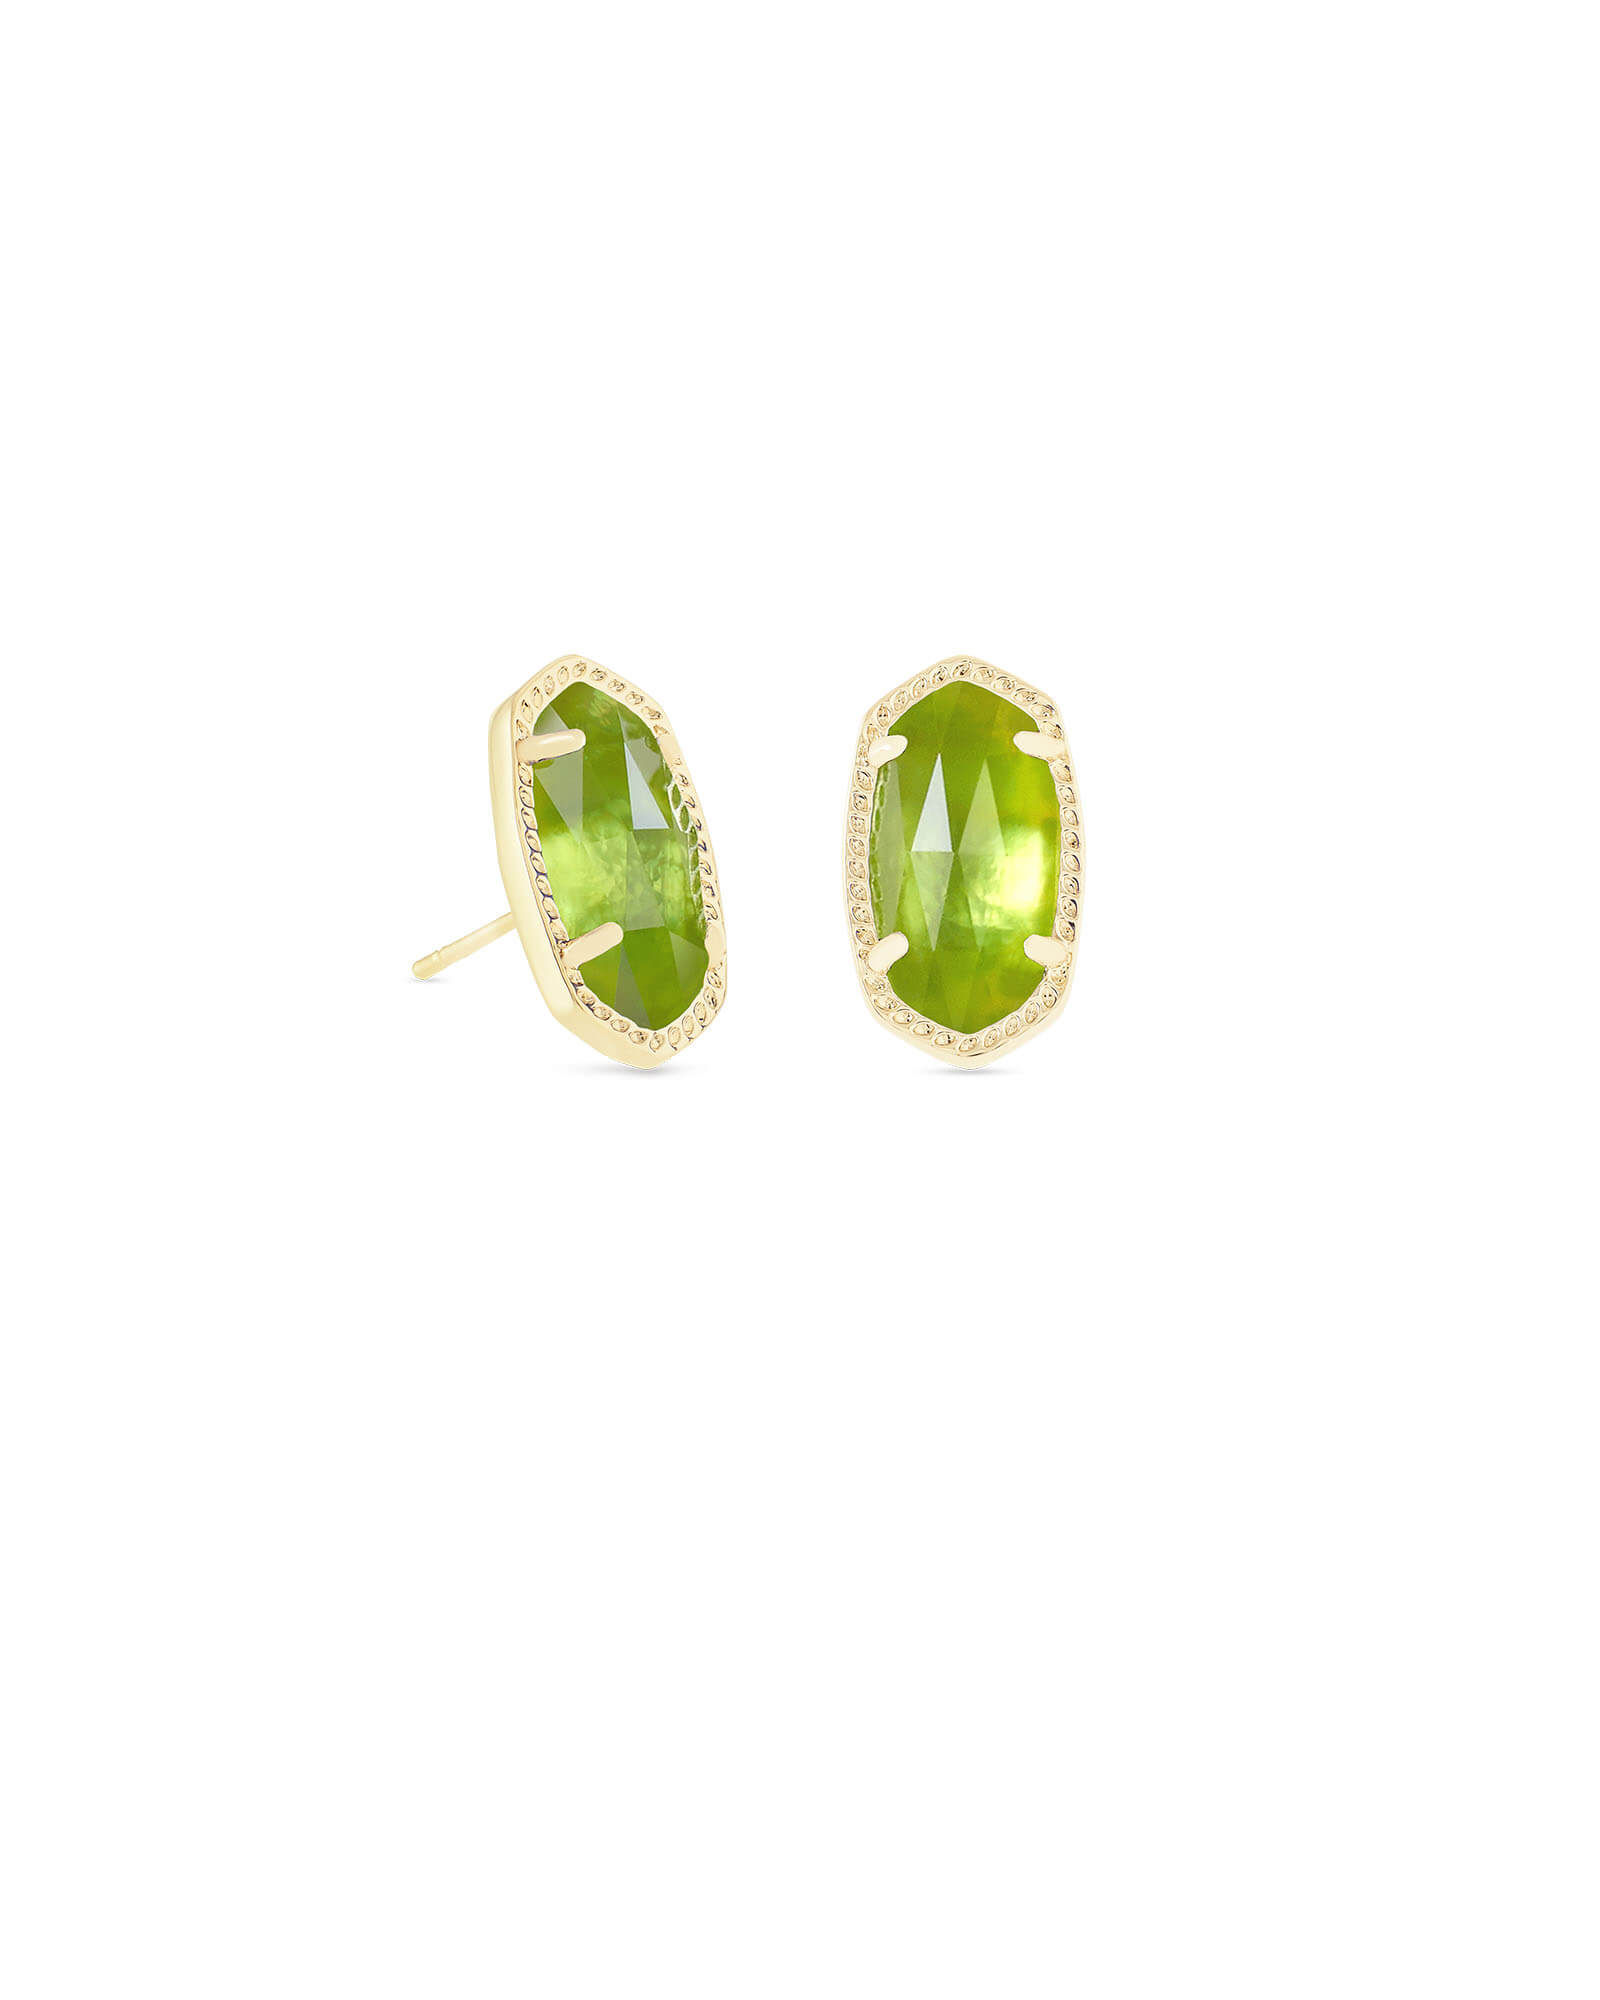 Ellie Gold Stud Earrings in Peridot Illusion